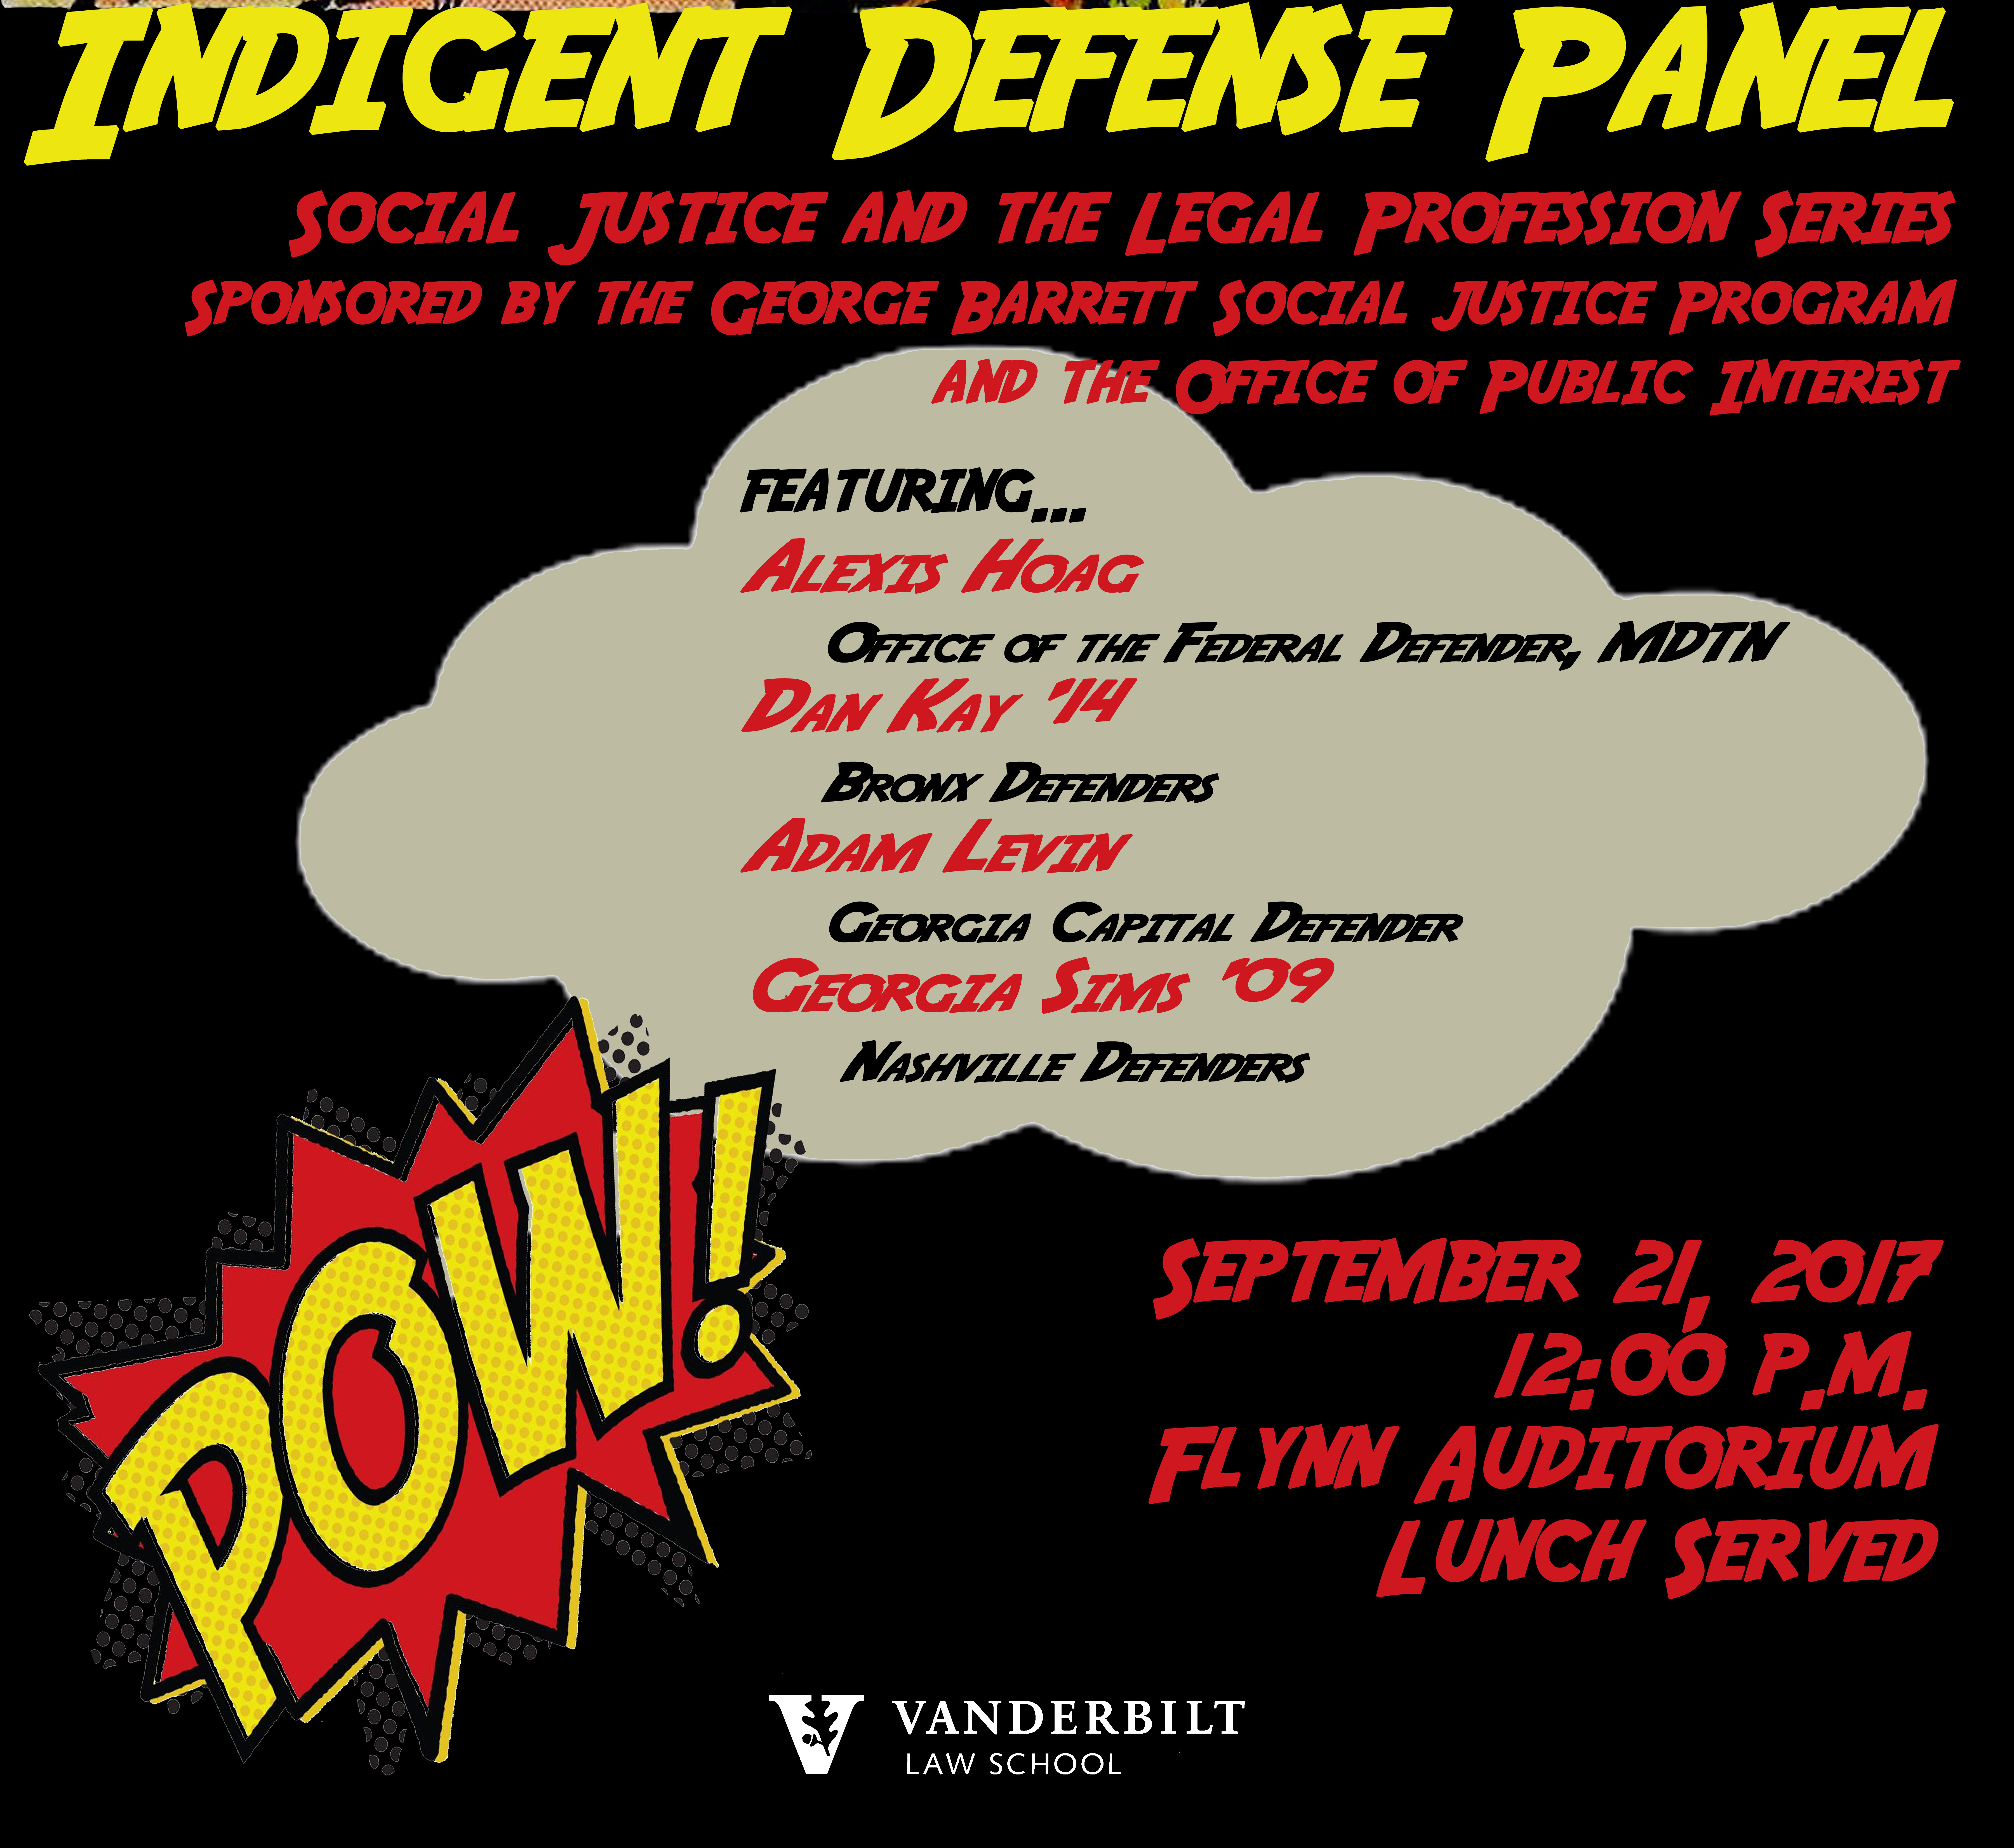 Indigent Defense Panel